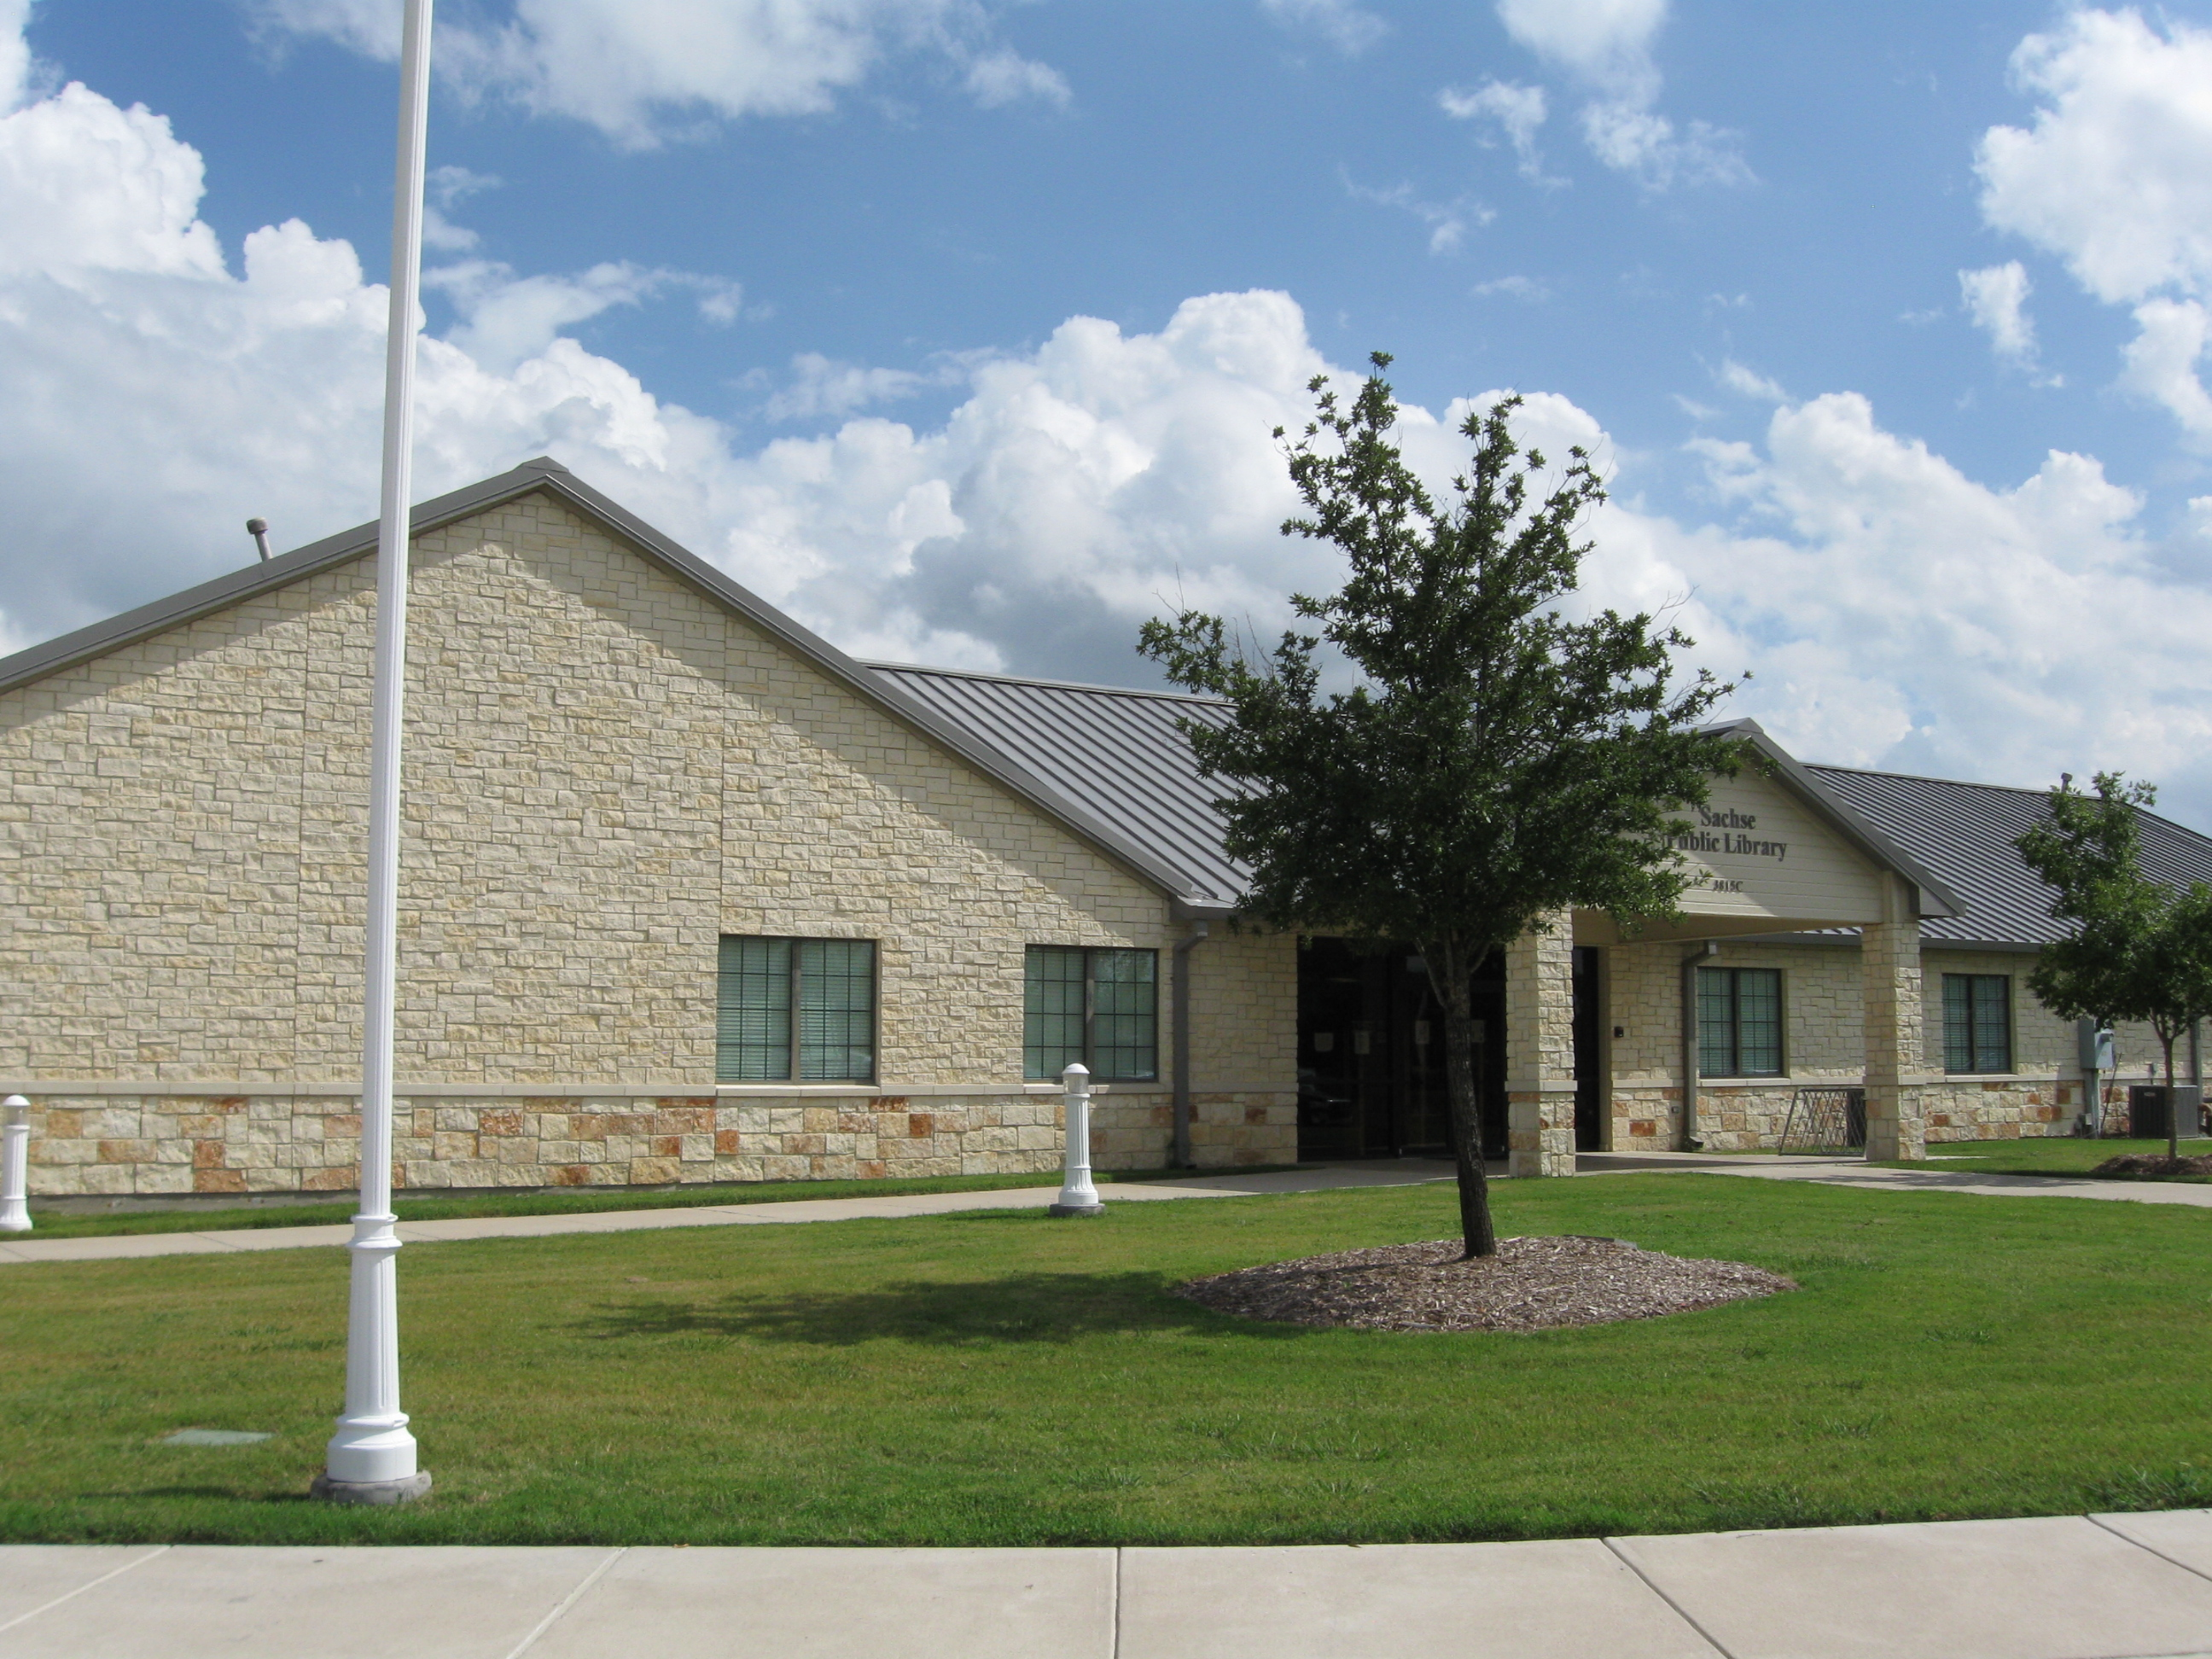 Sachse Library